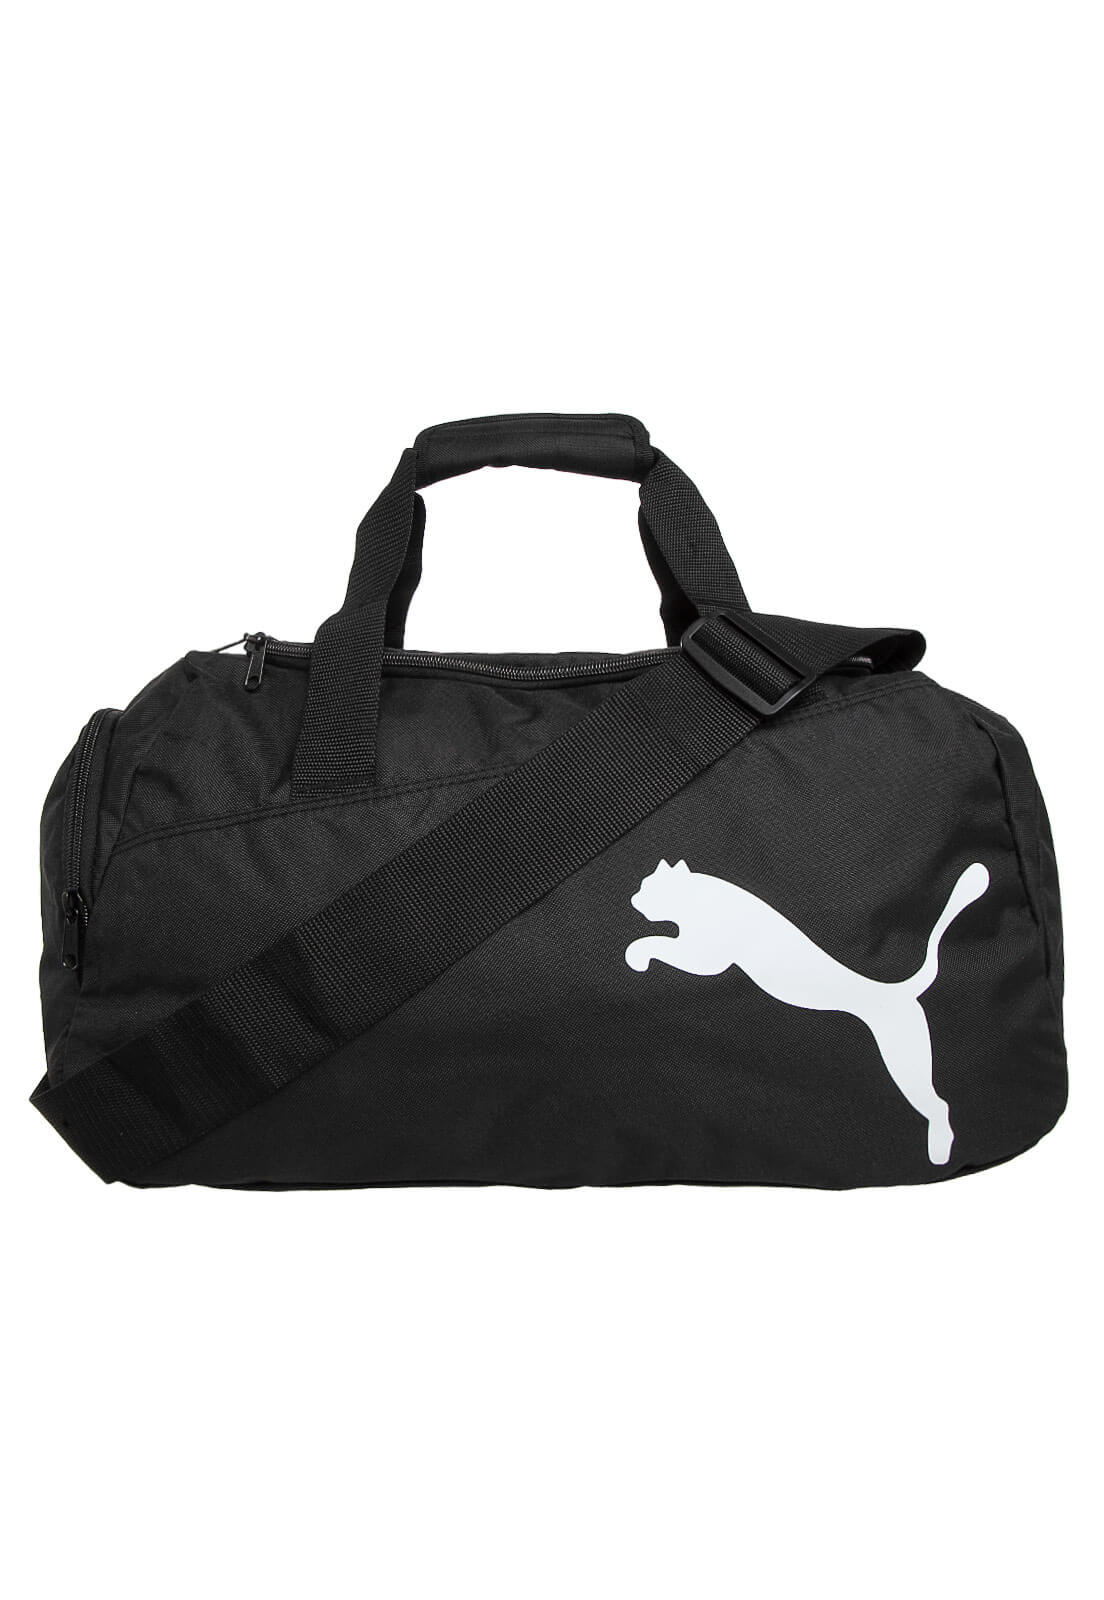 BOLSA PUMA PRO TRAINING SMALL